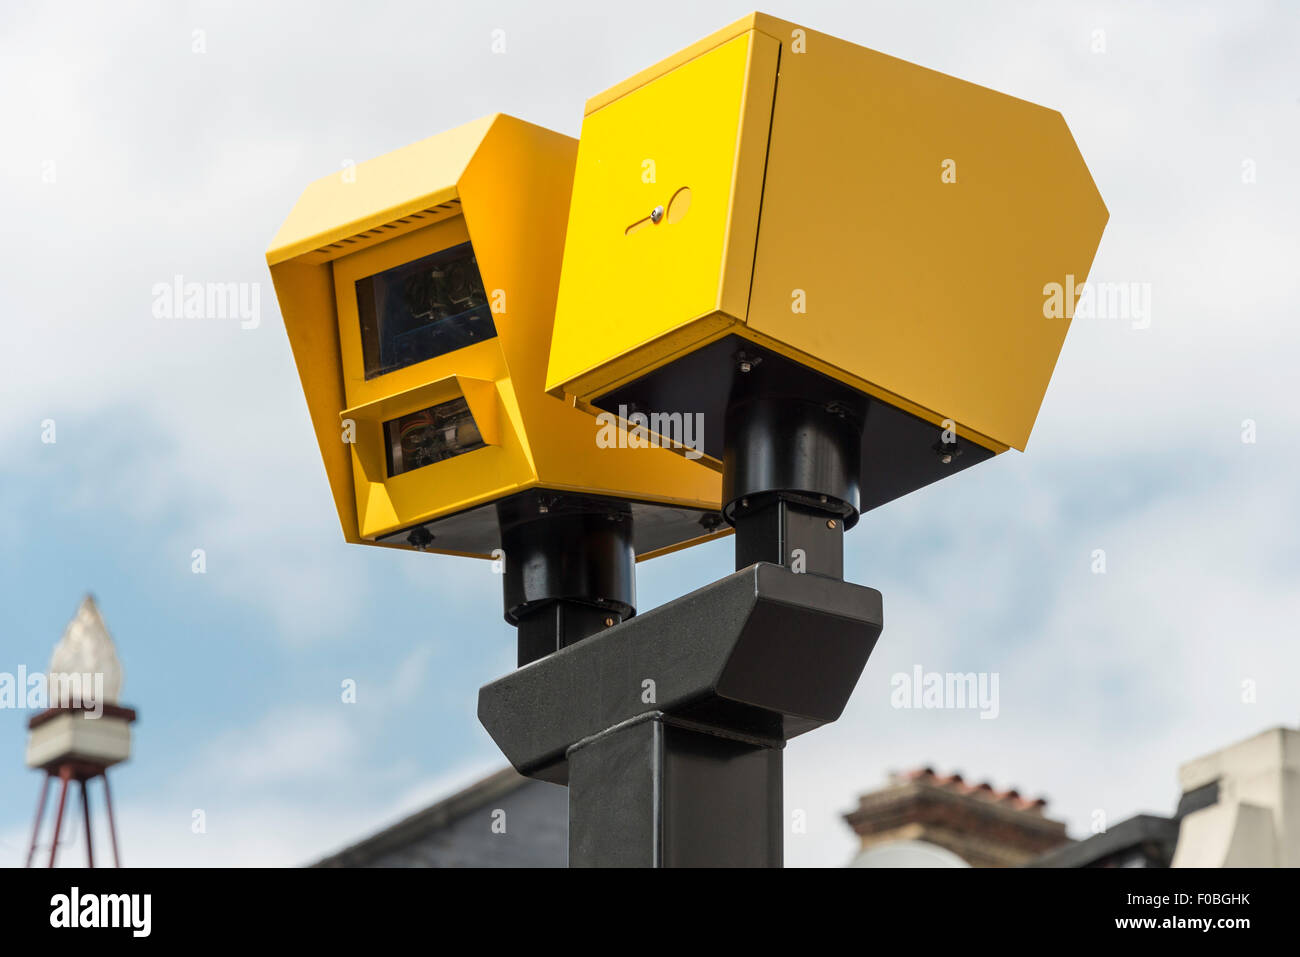 Speed cameras on Islington High Street, Islington, London Borough of Islington, London, England, United Kingdom - Stock Image